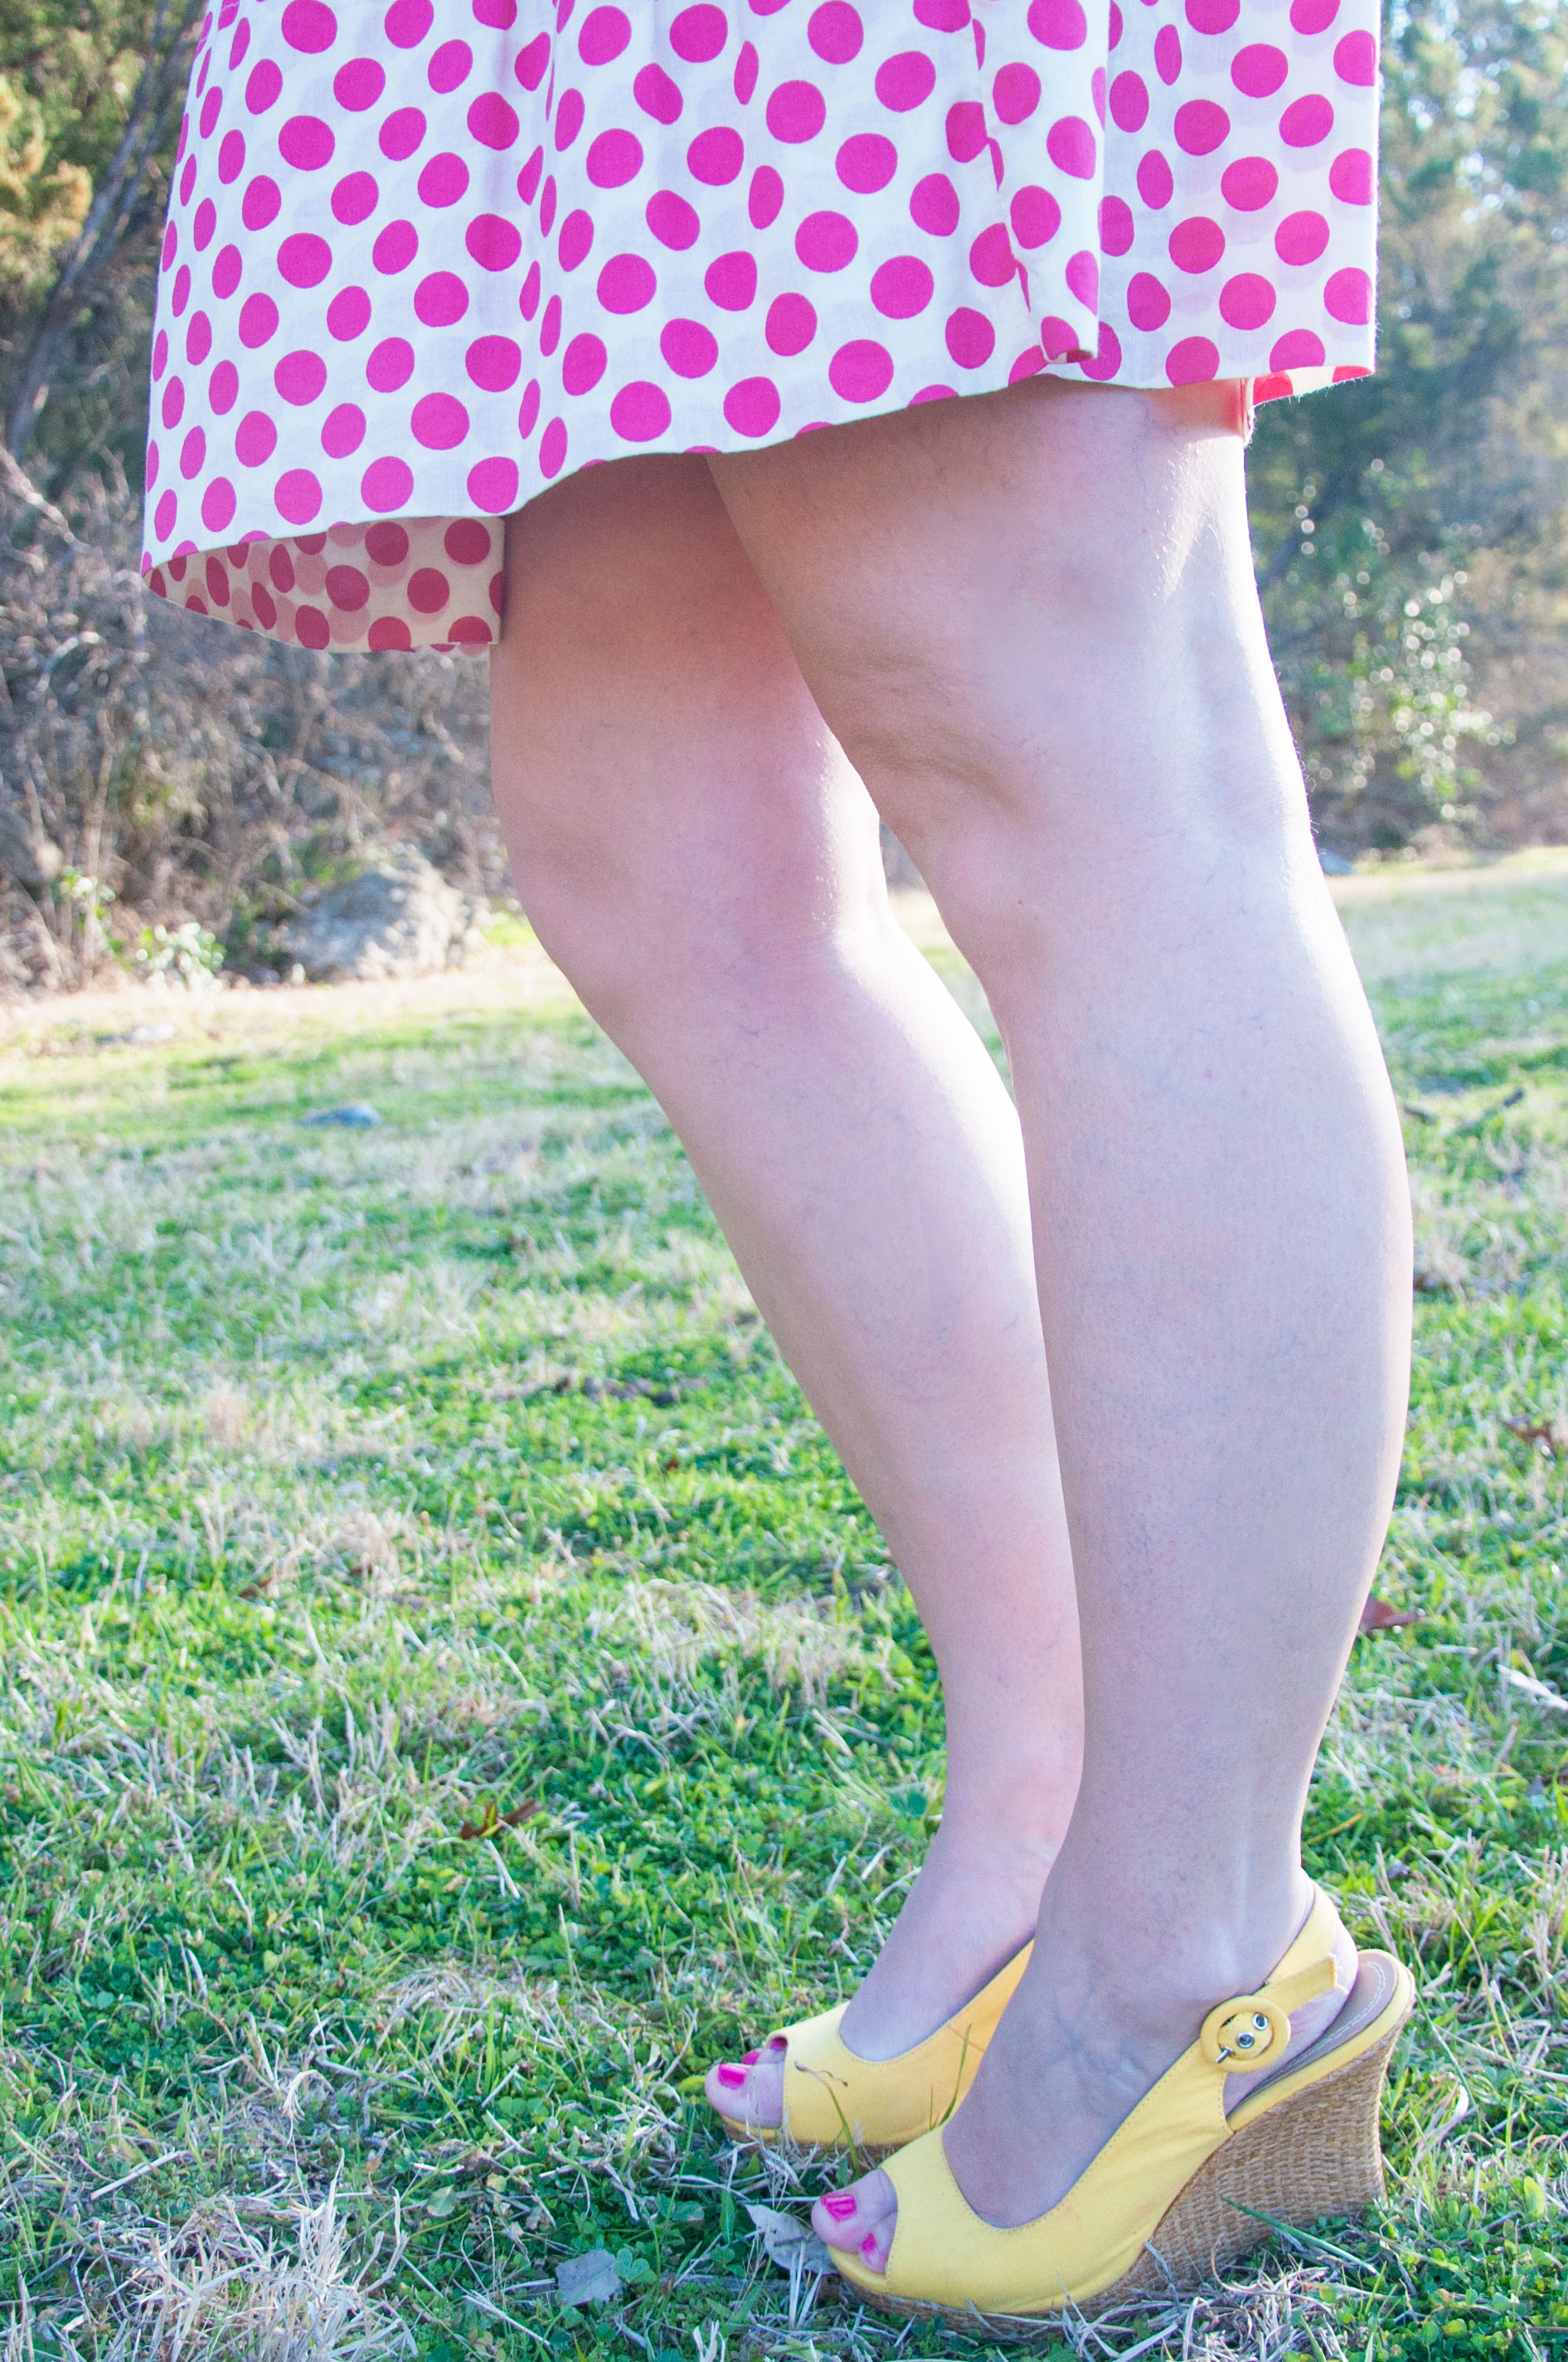 Pink polka dot dress with yellow wedges